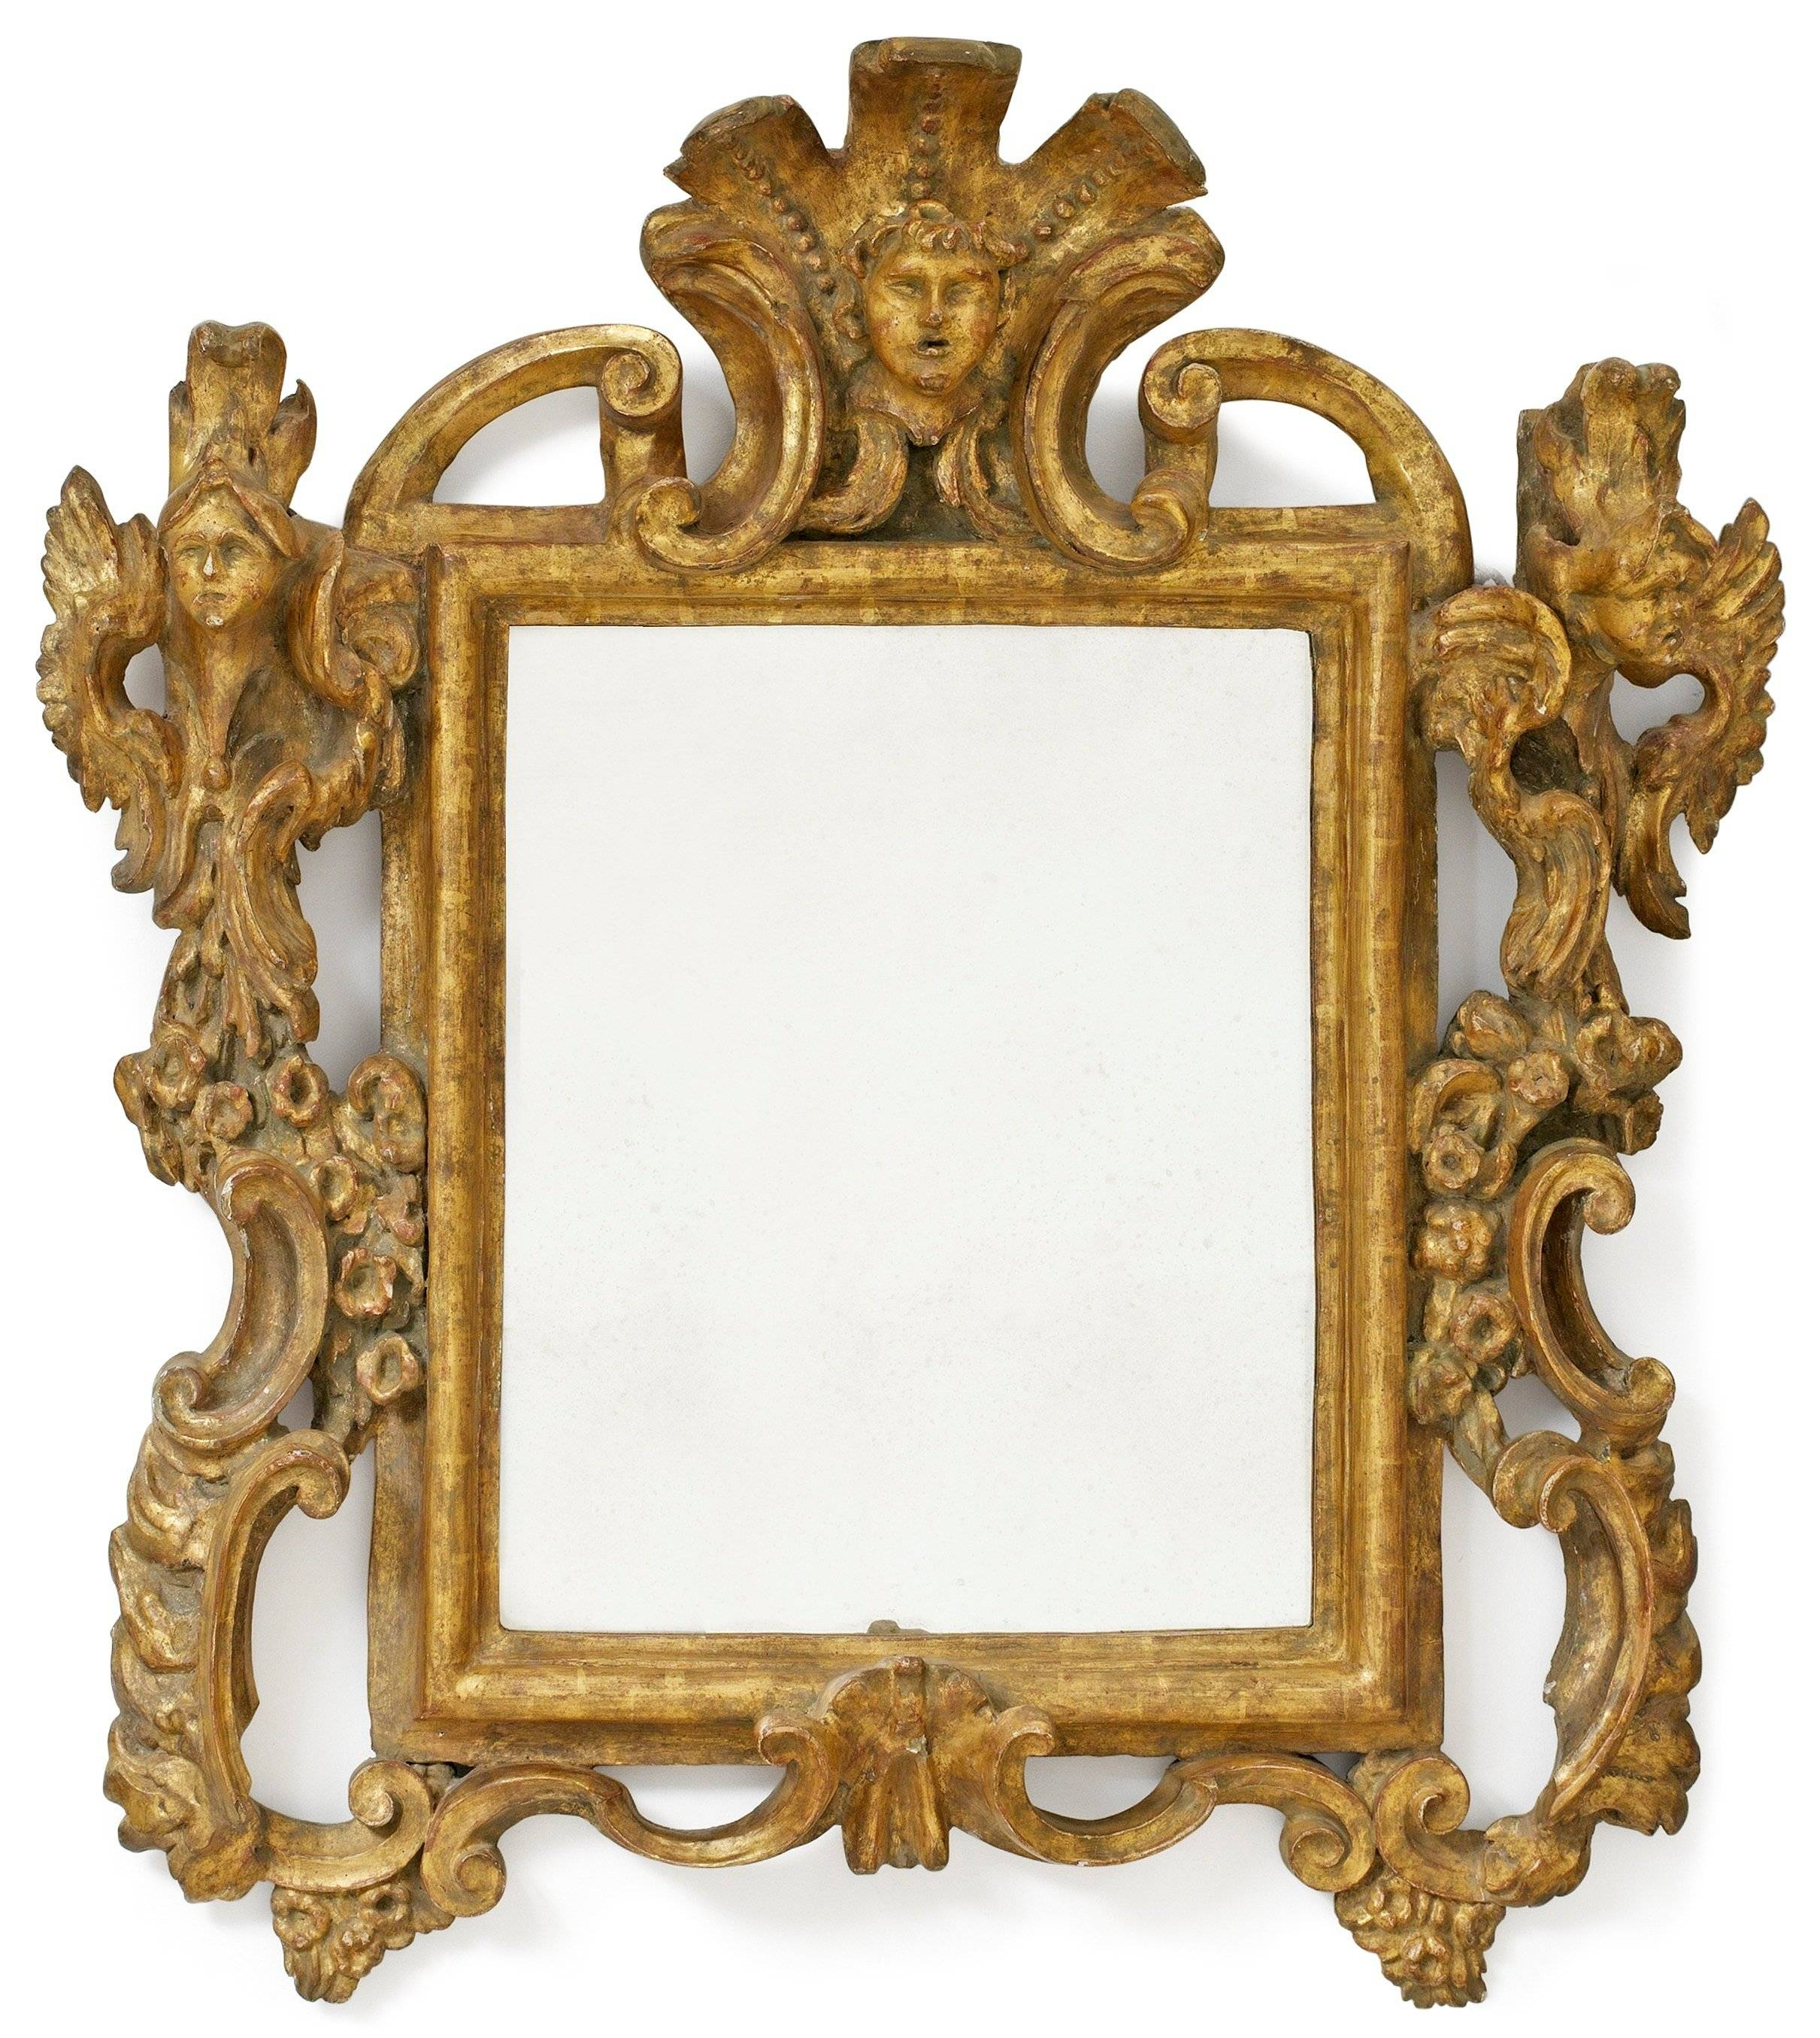 Bathroom: Astounding Baroque Mirror With Unique Frame For Bathroom within Large Baroque Mirrors (Image 10 of 25)